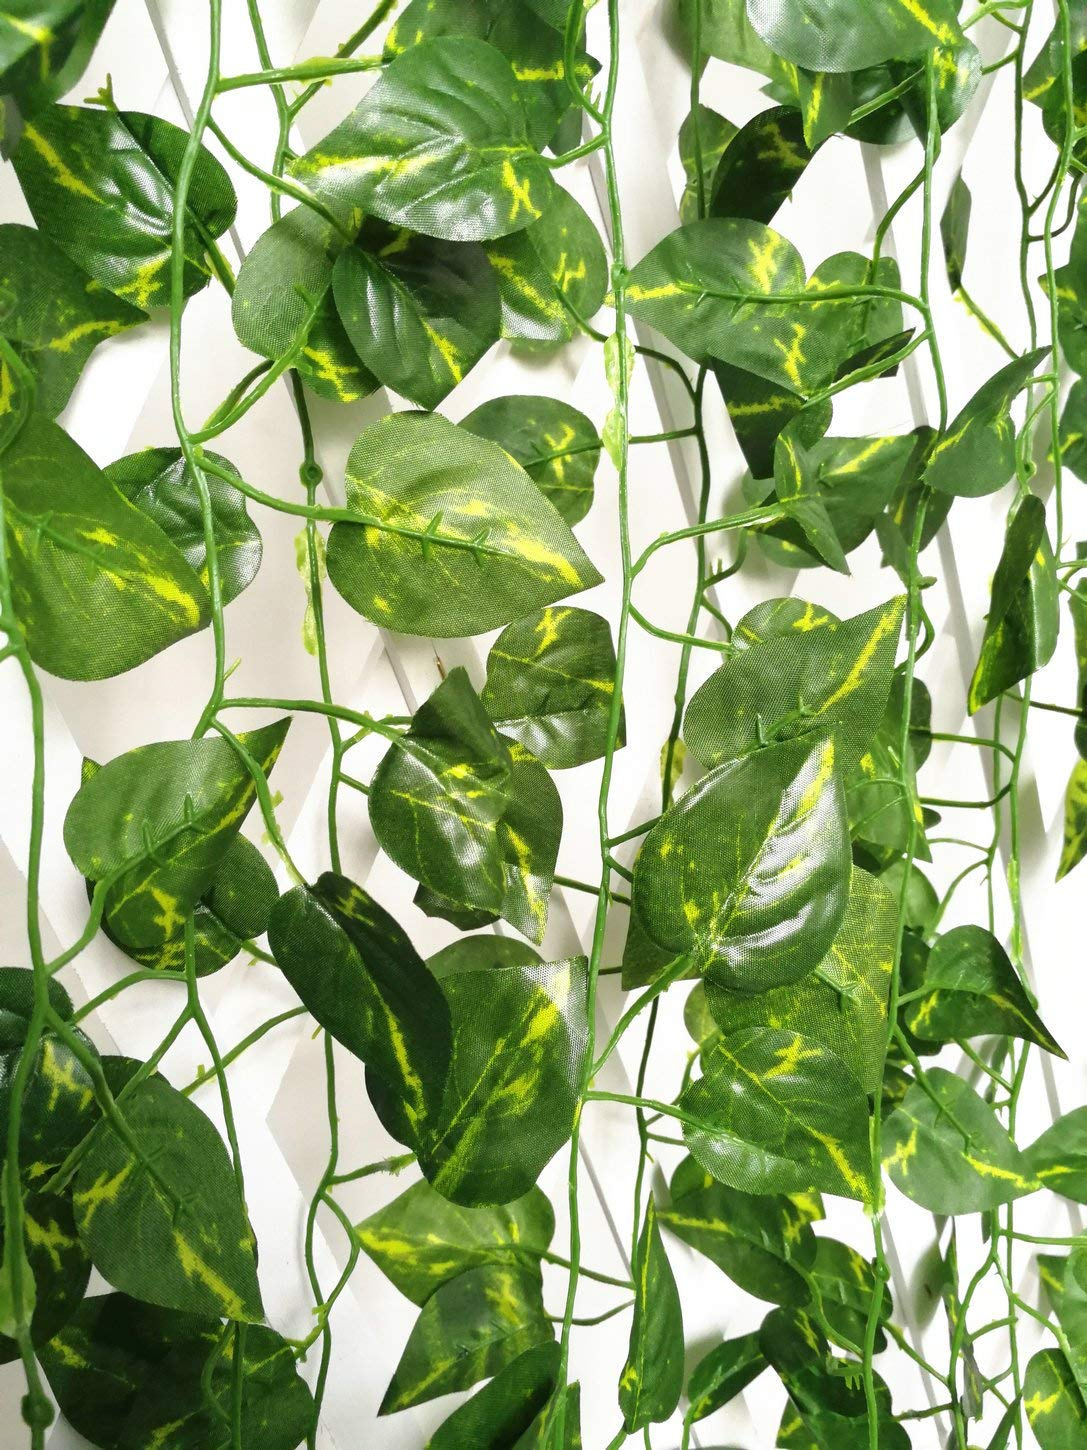 ShinyBeauty artificial vines with leaves artificial ivy screening artificial ivy plant vines 12pcs (84 Feet)